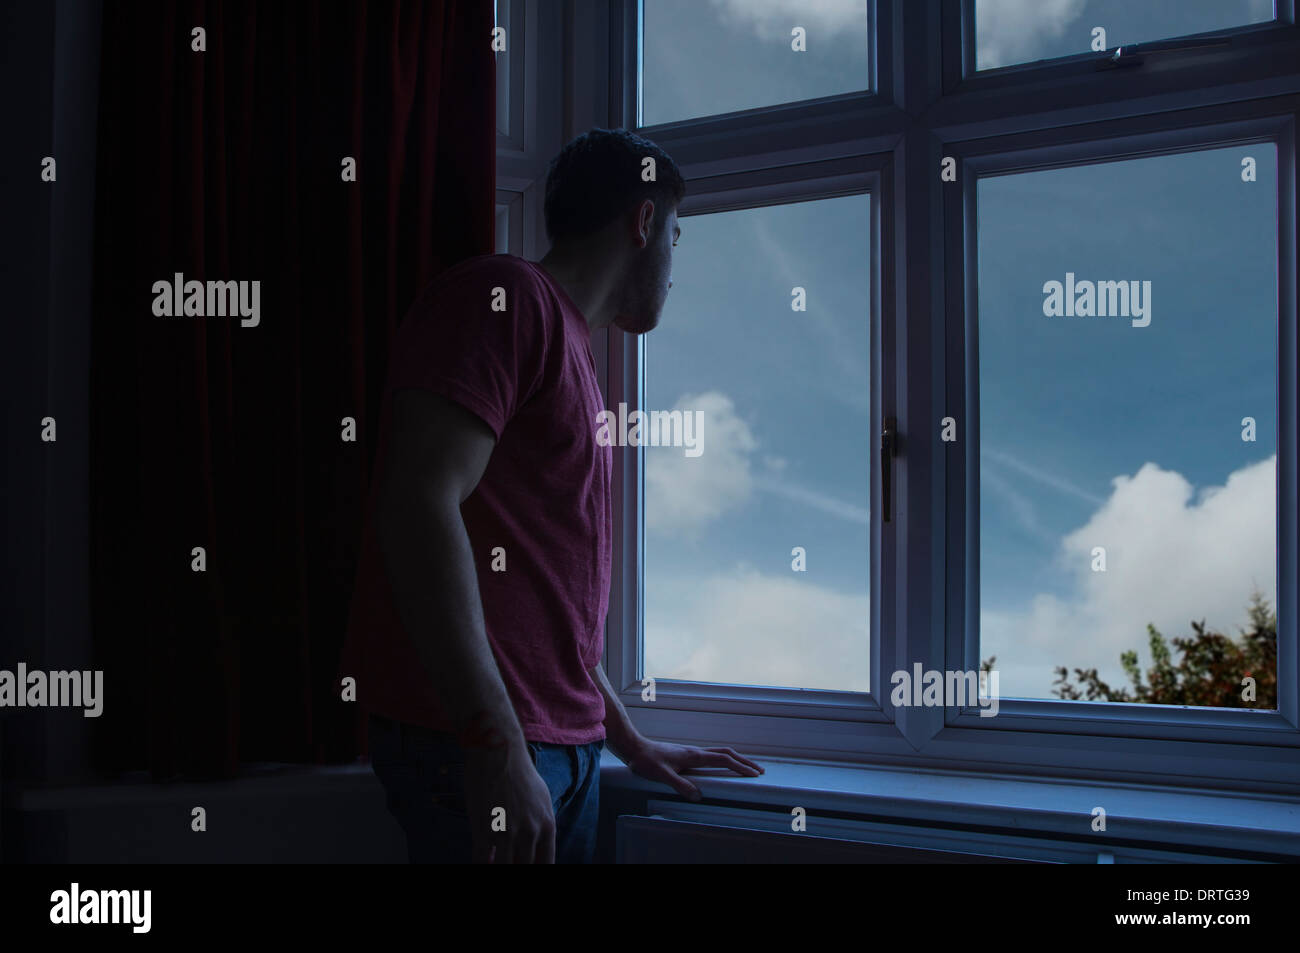 Young man in a dark room looking out through a window. - Stock Image